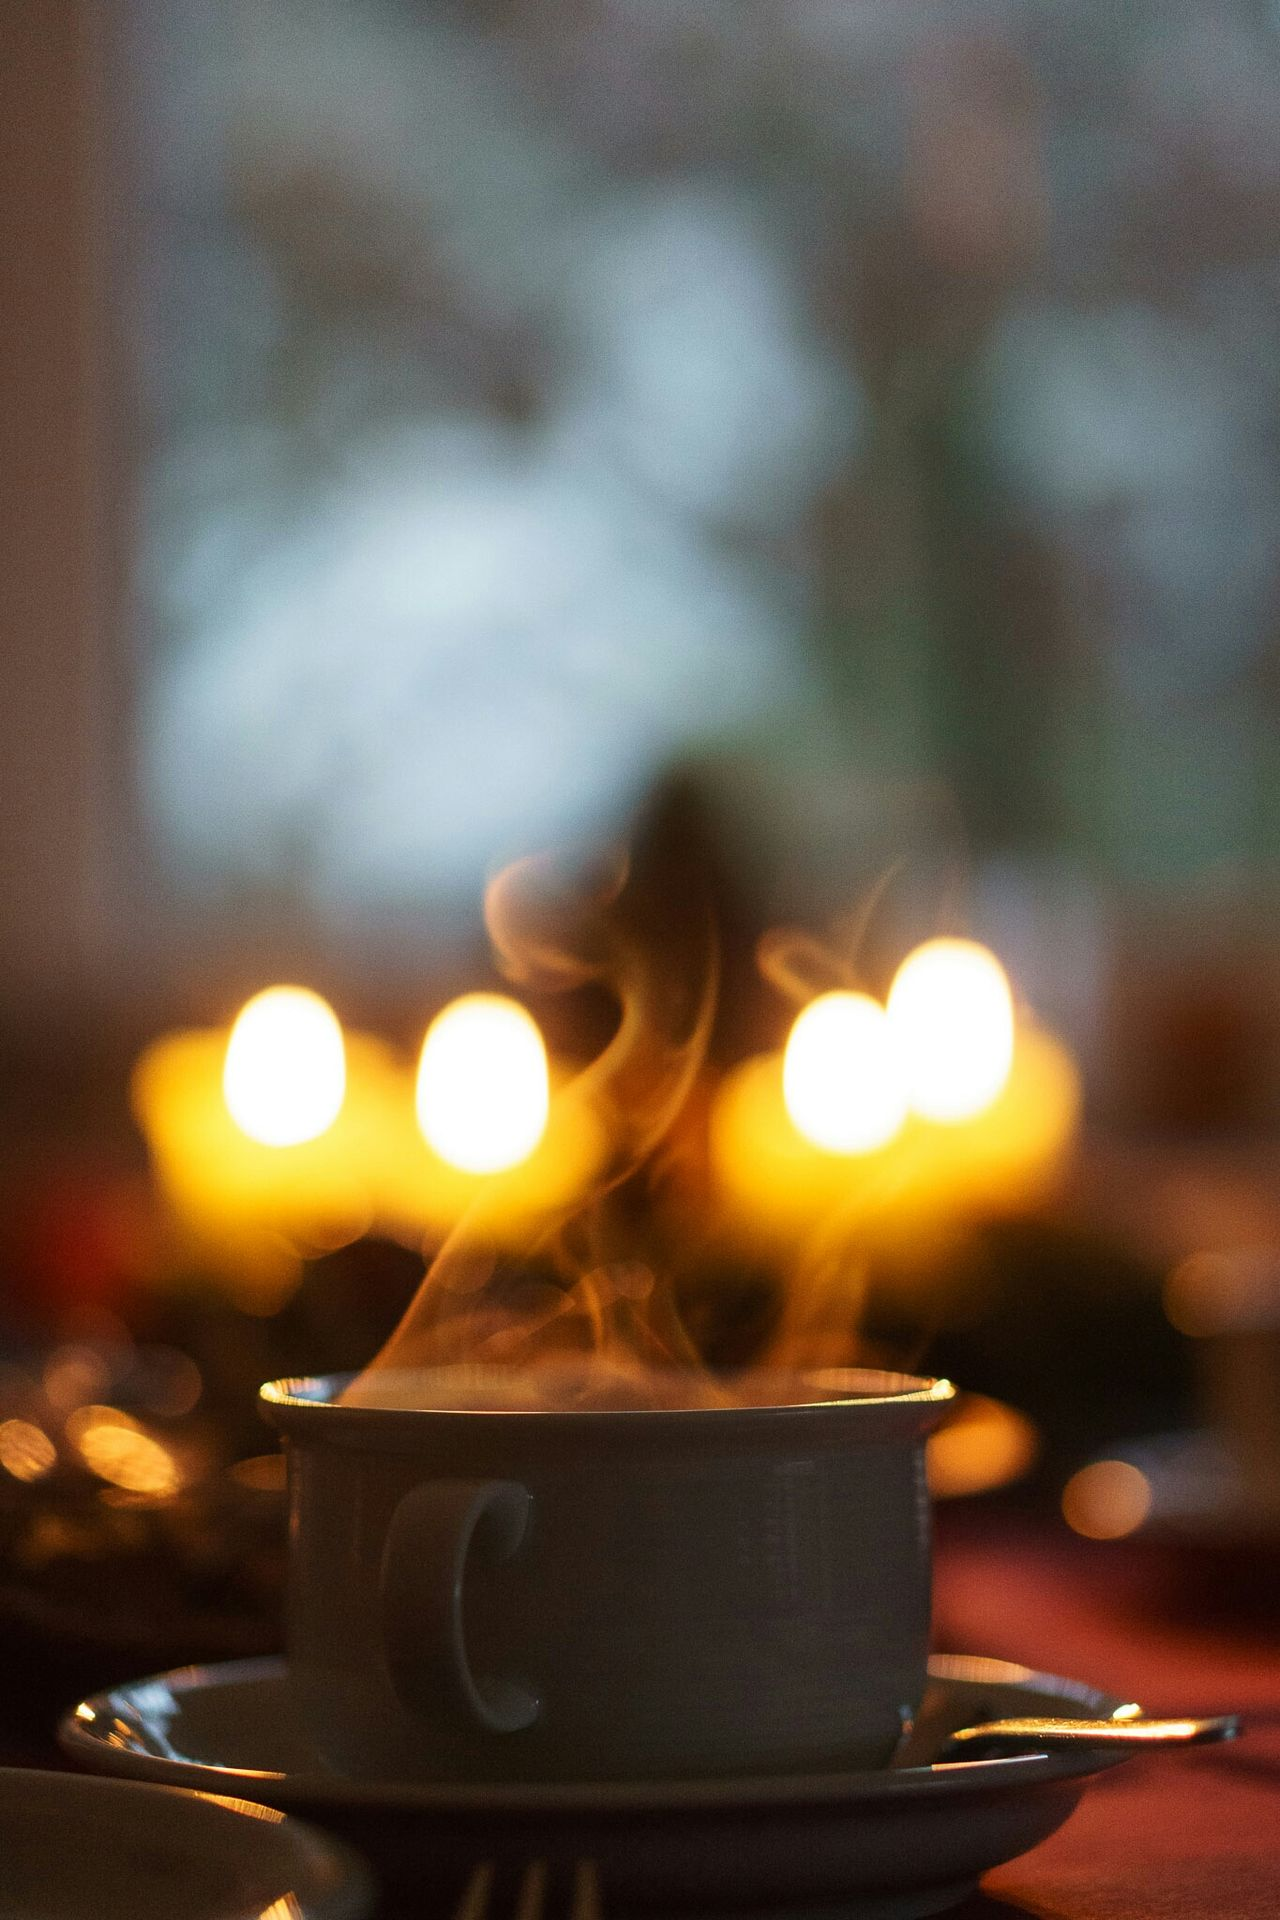 Happiness is... Relaxing Chill Mode Christmas Sony Dof Tealovers Coffeelovers Hotcupofjoe Cuppa Depth Of Field